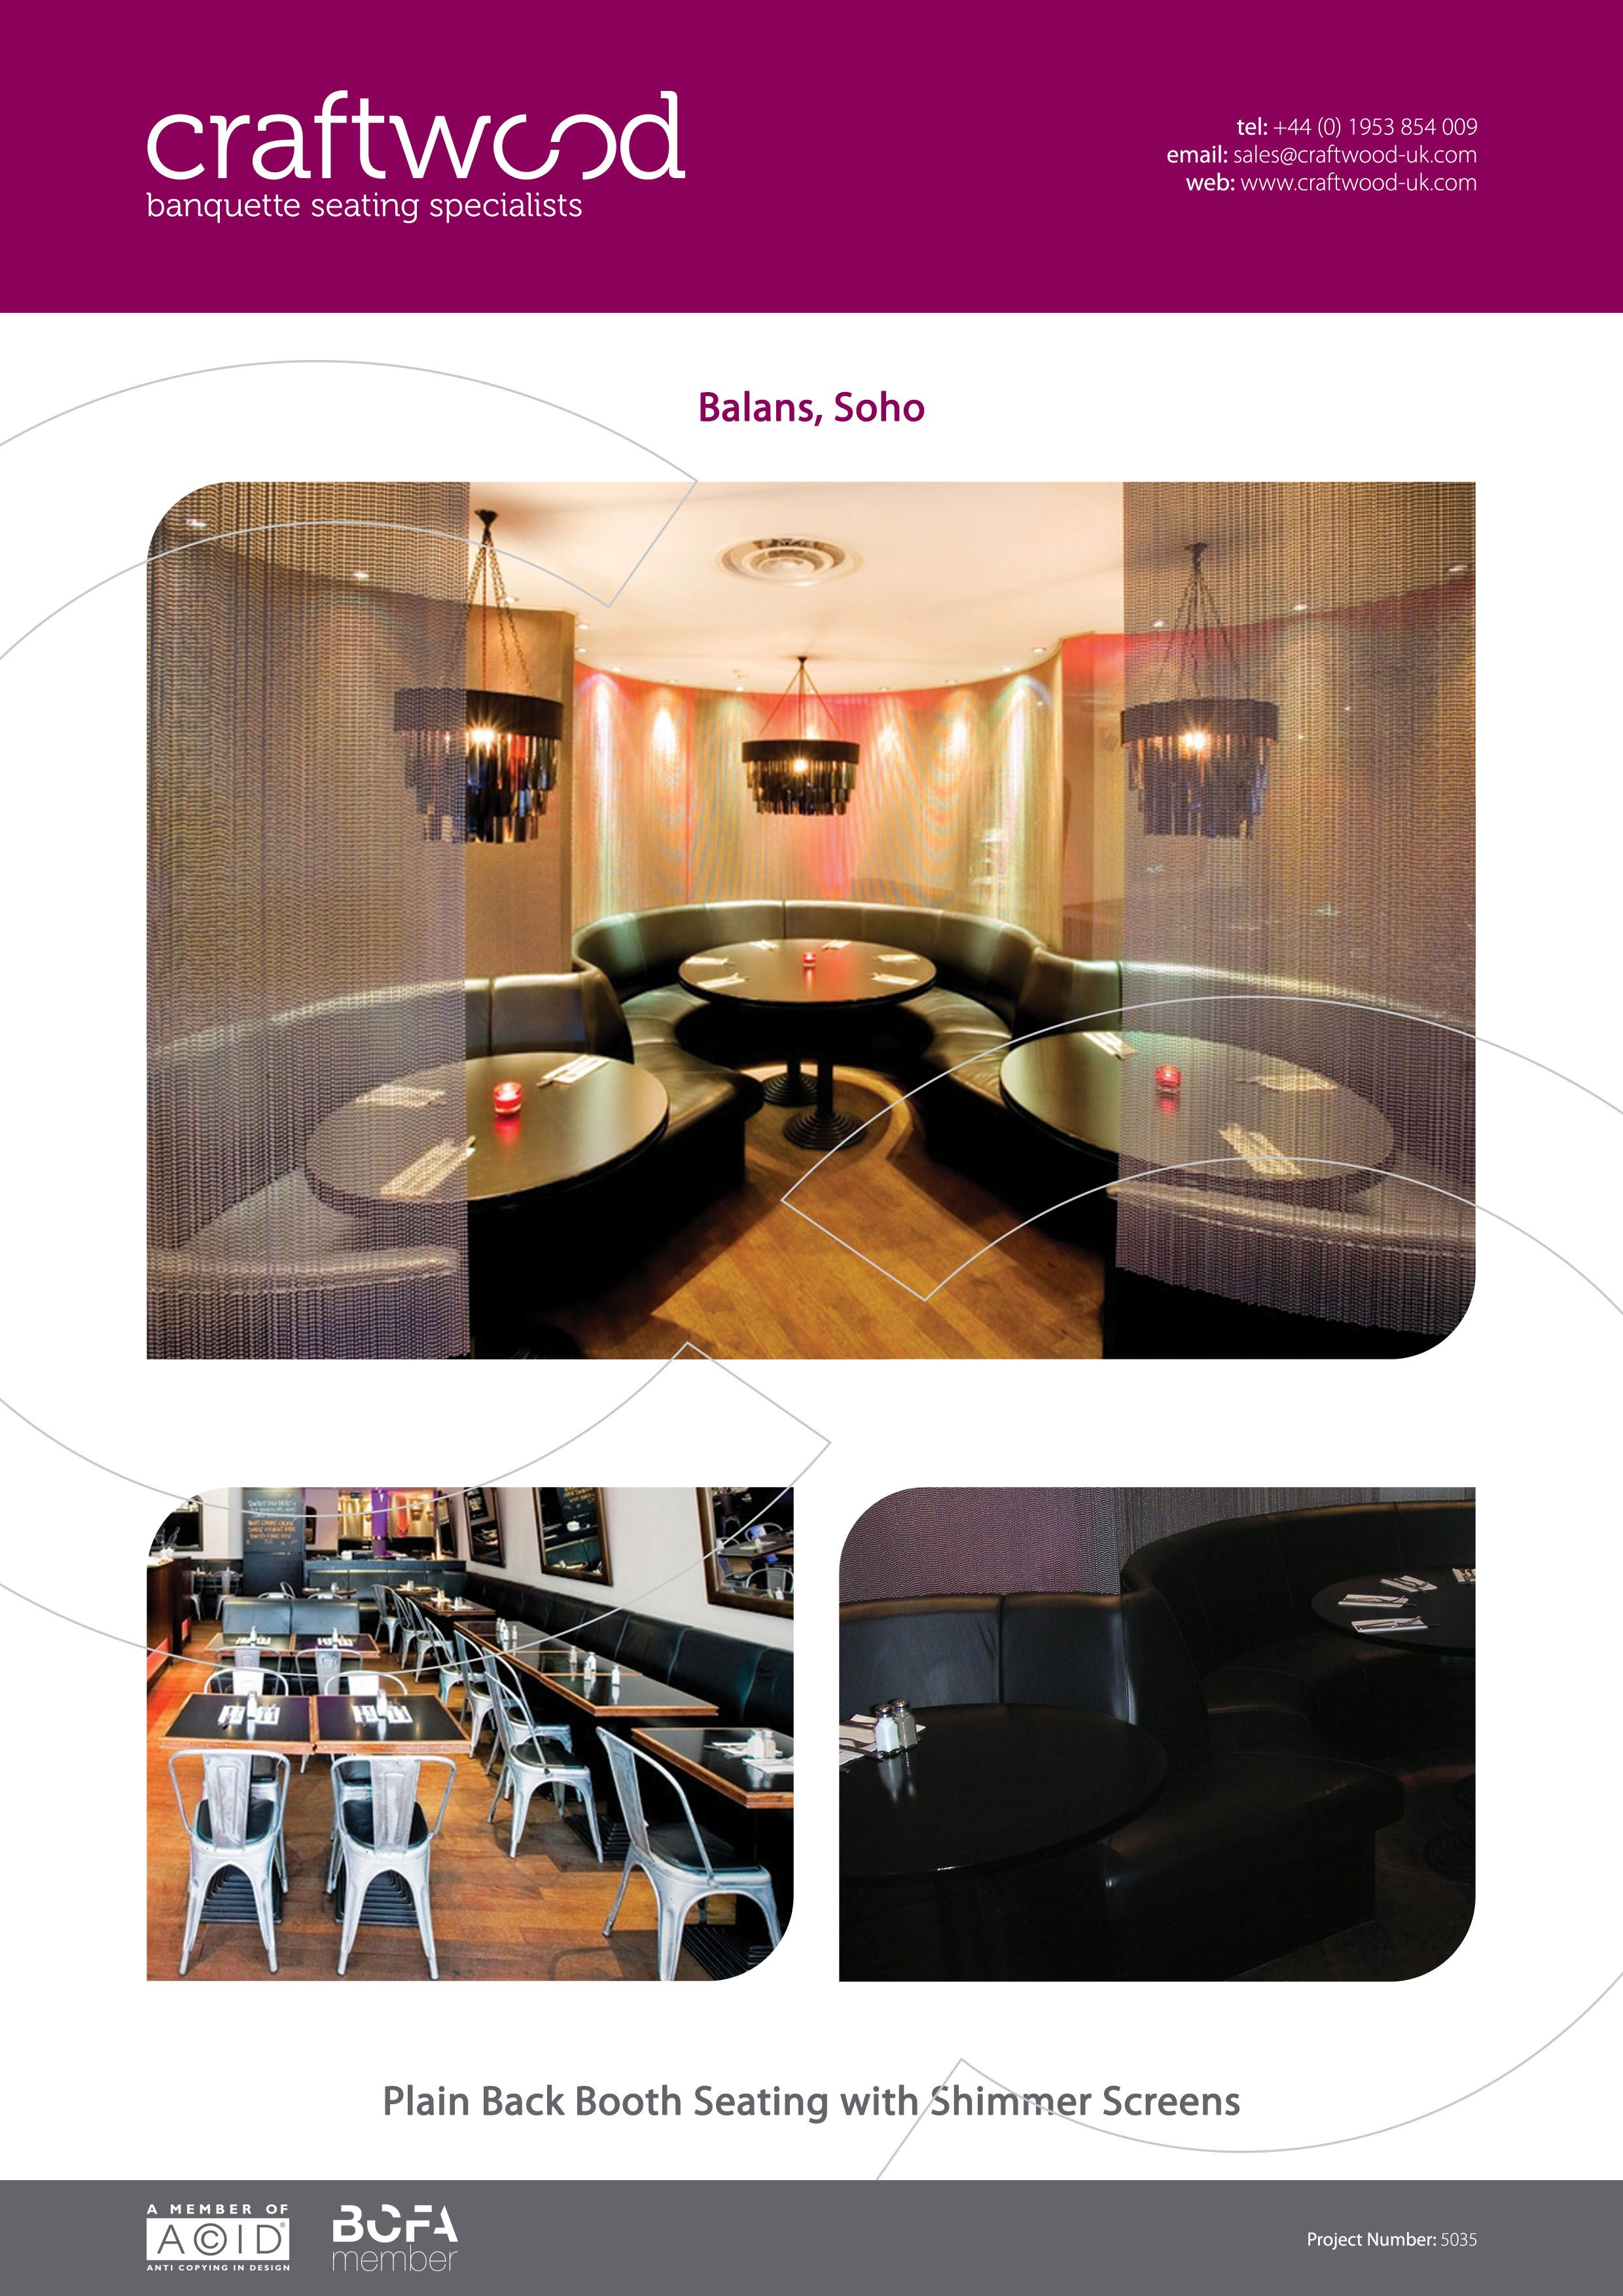 Balans, Soho. Plain back booth seating with shimmer screens.